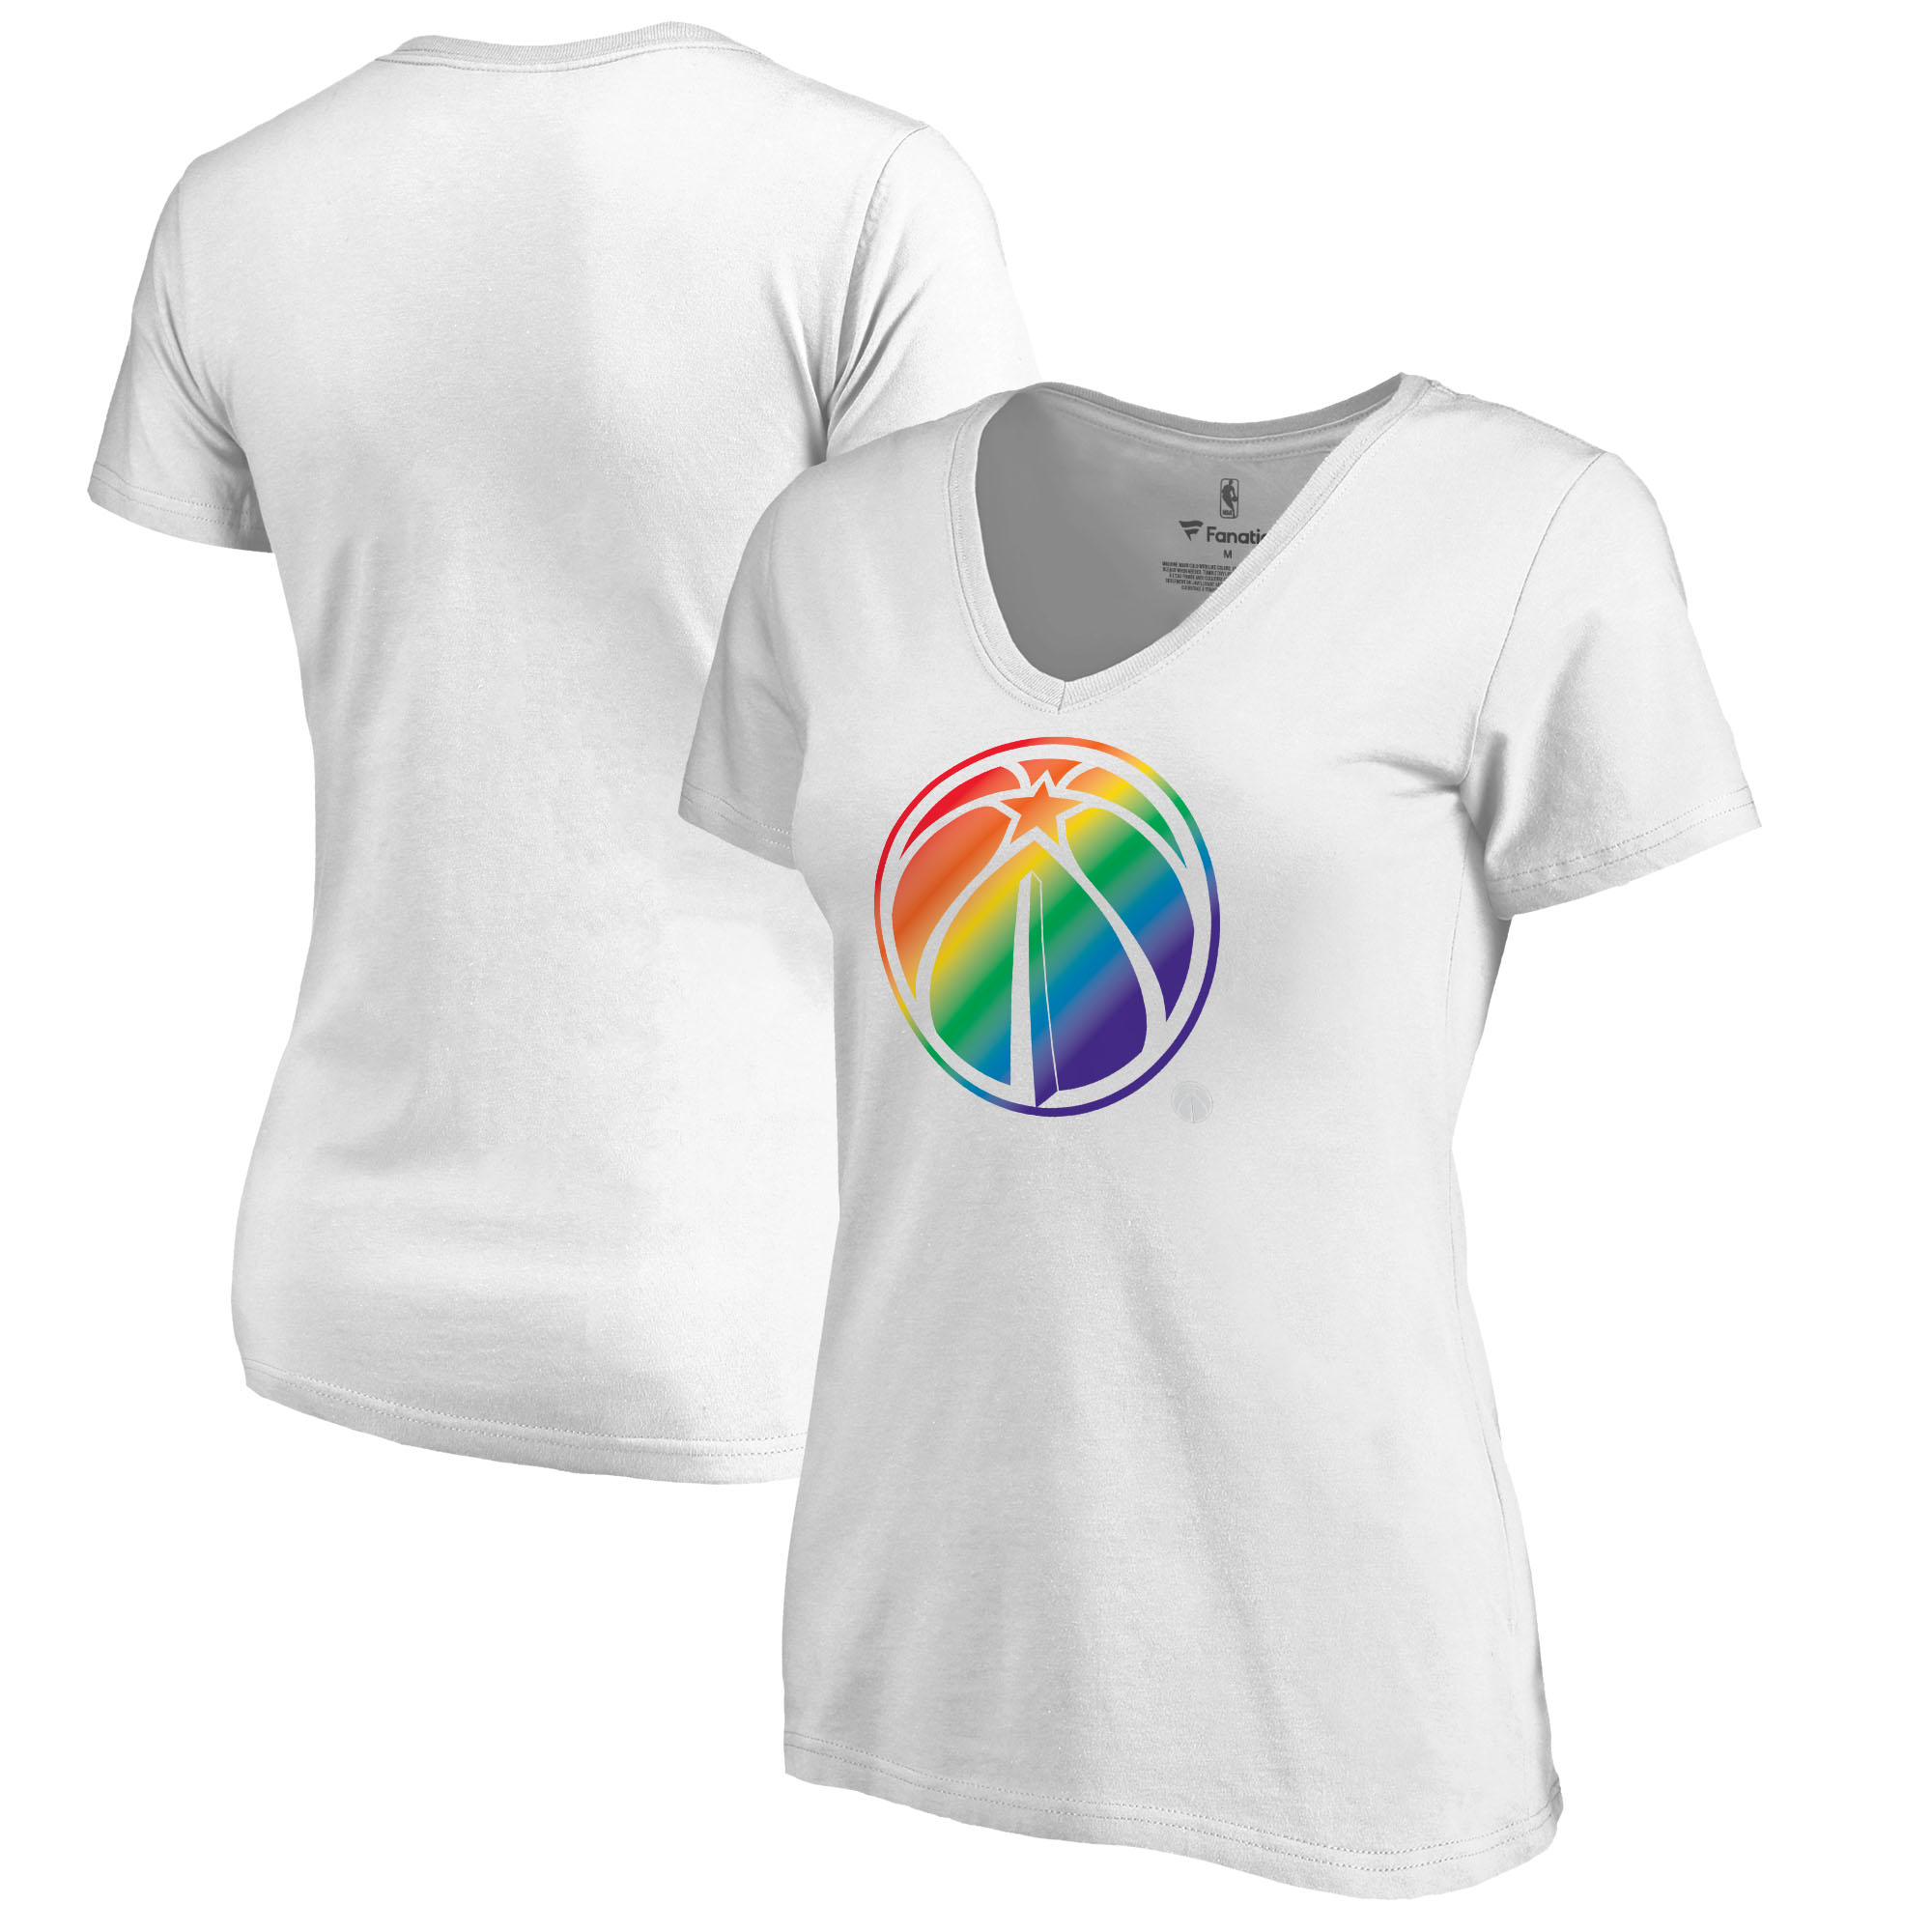 Washington Wizards Fanatics Branded Women's Team Pride V-Neck T-Shirt - White